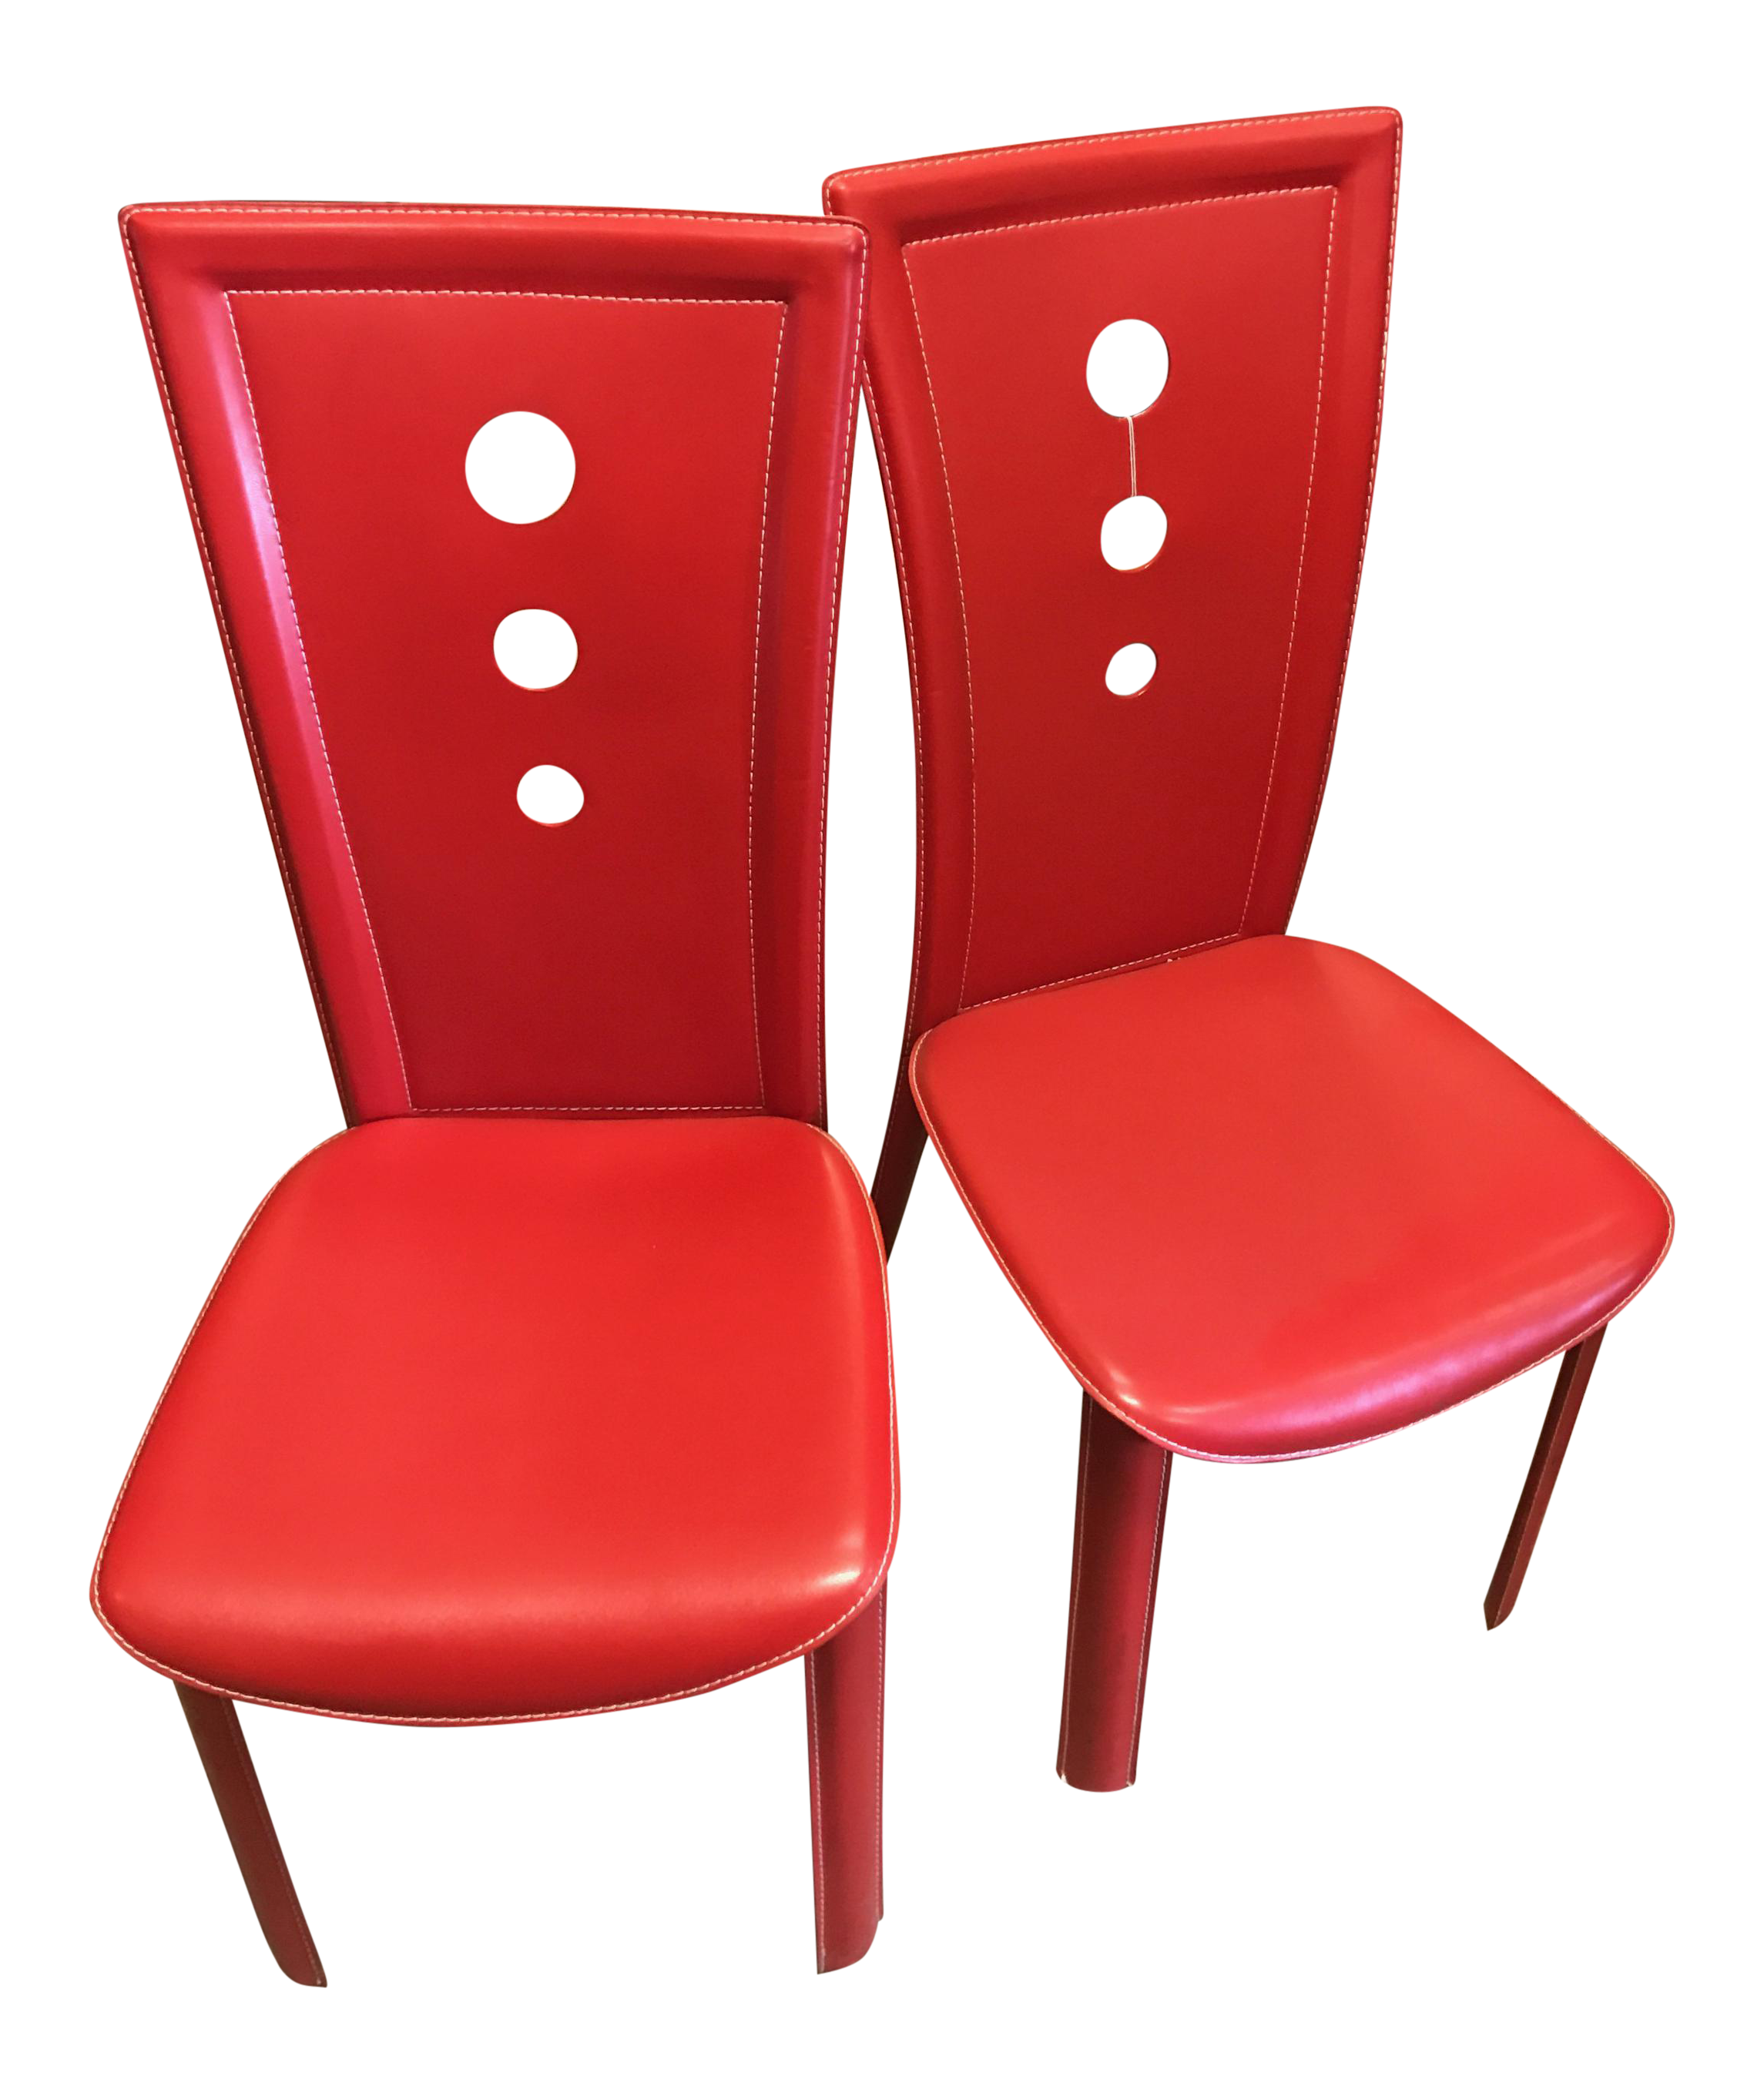 Contemporary Red Mid Century Style Chairs A Pair Chairish